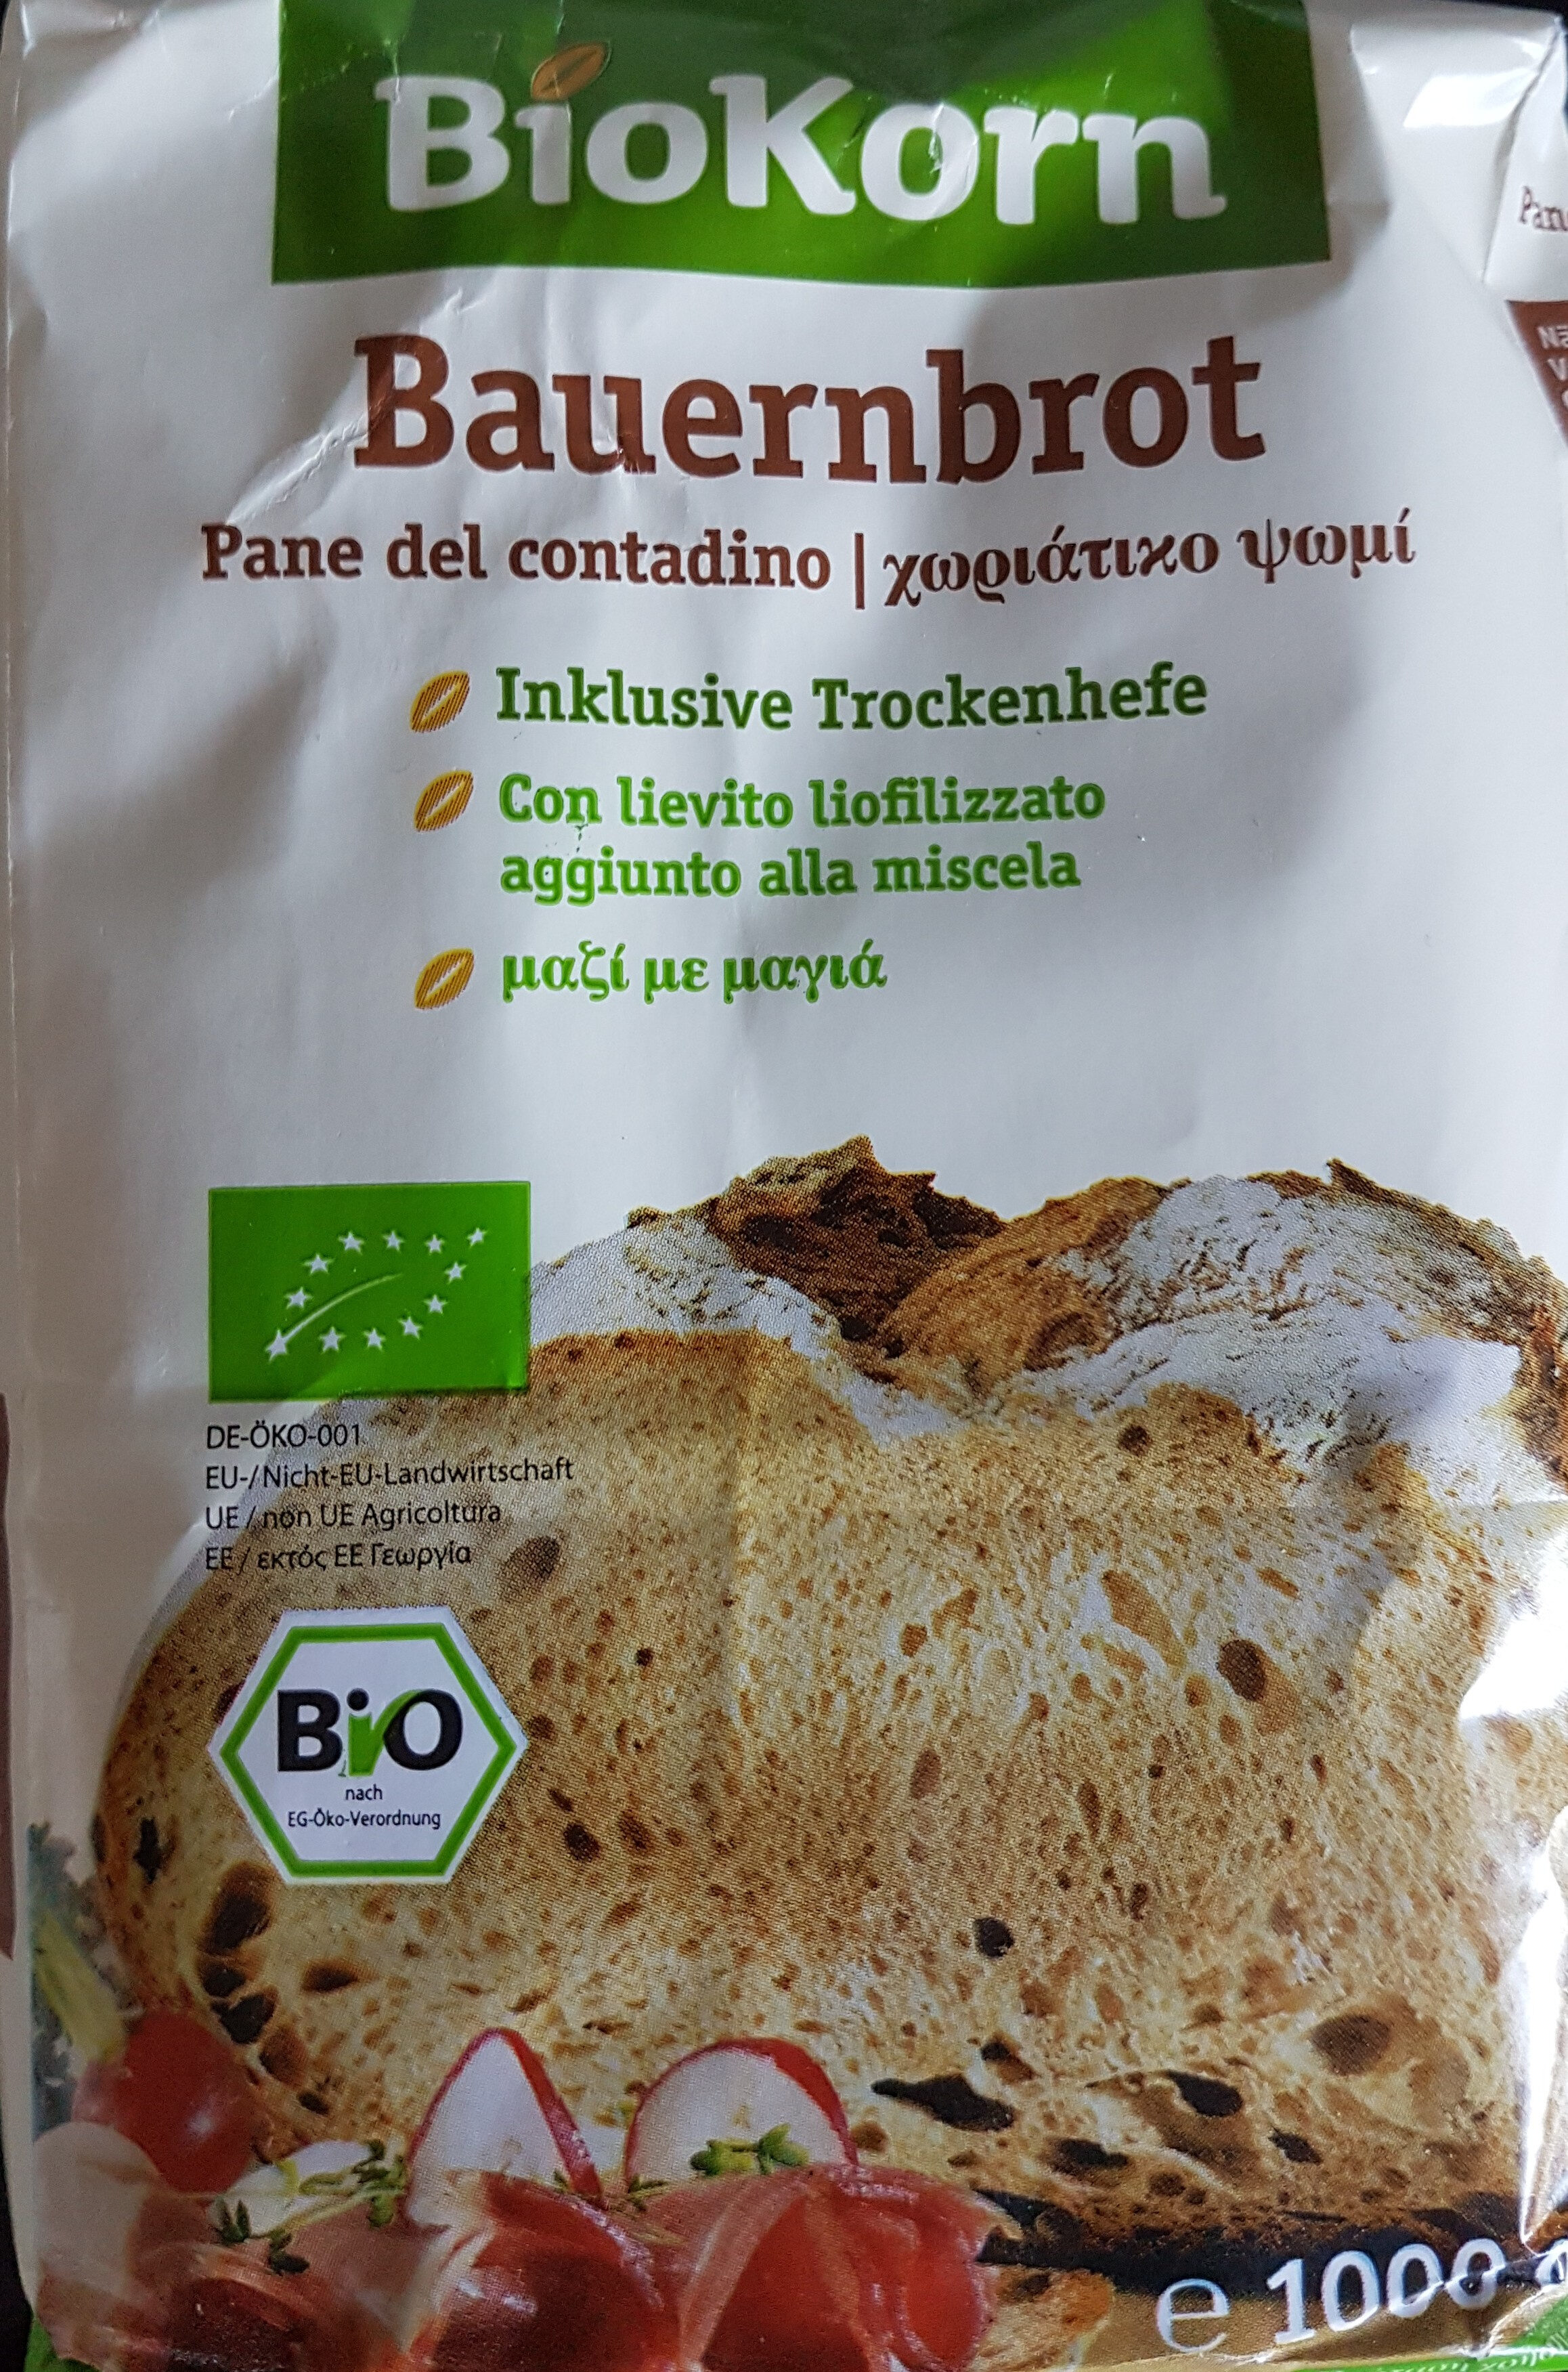 Bauernbrot - Product